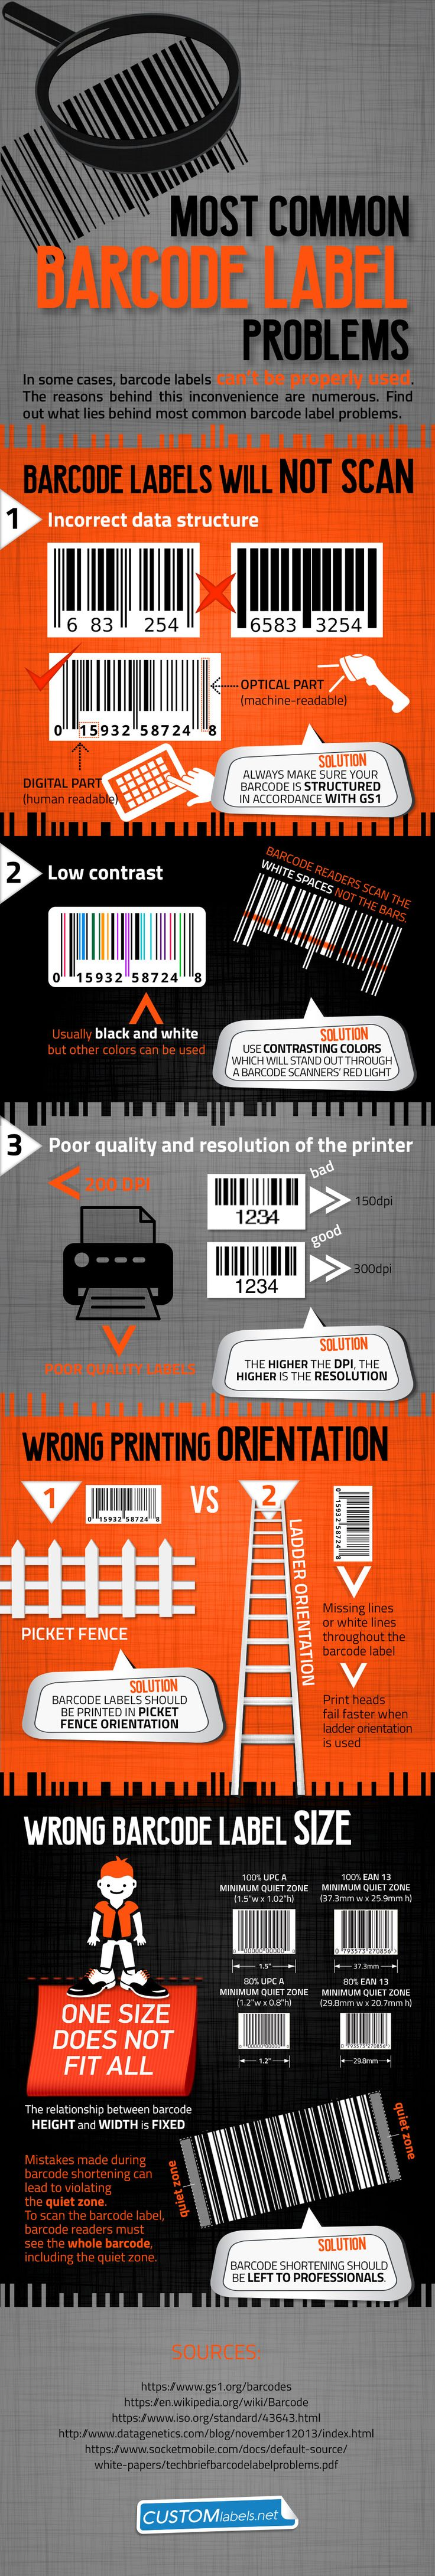 Barcode Label Problems